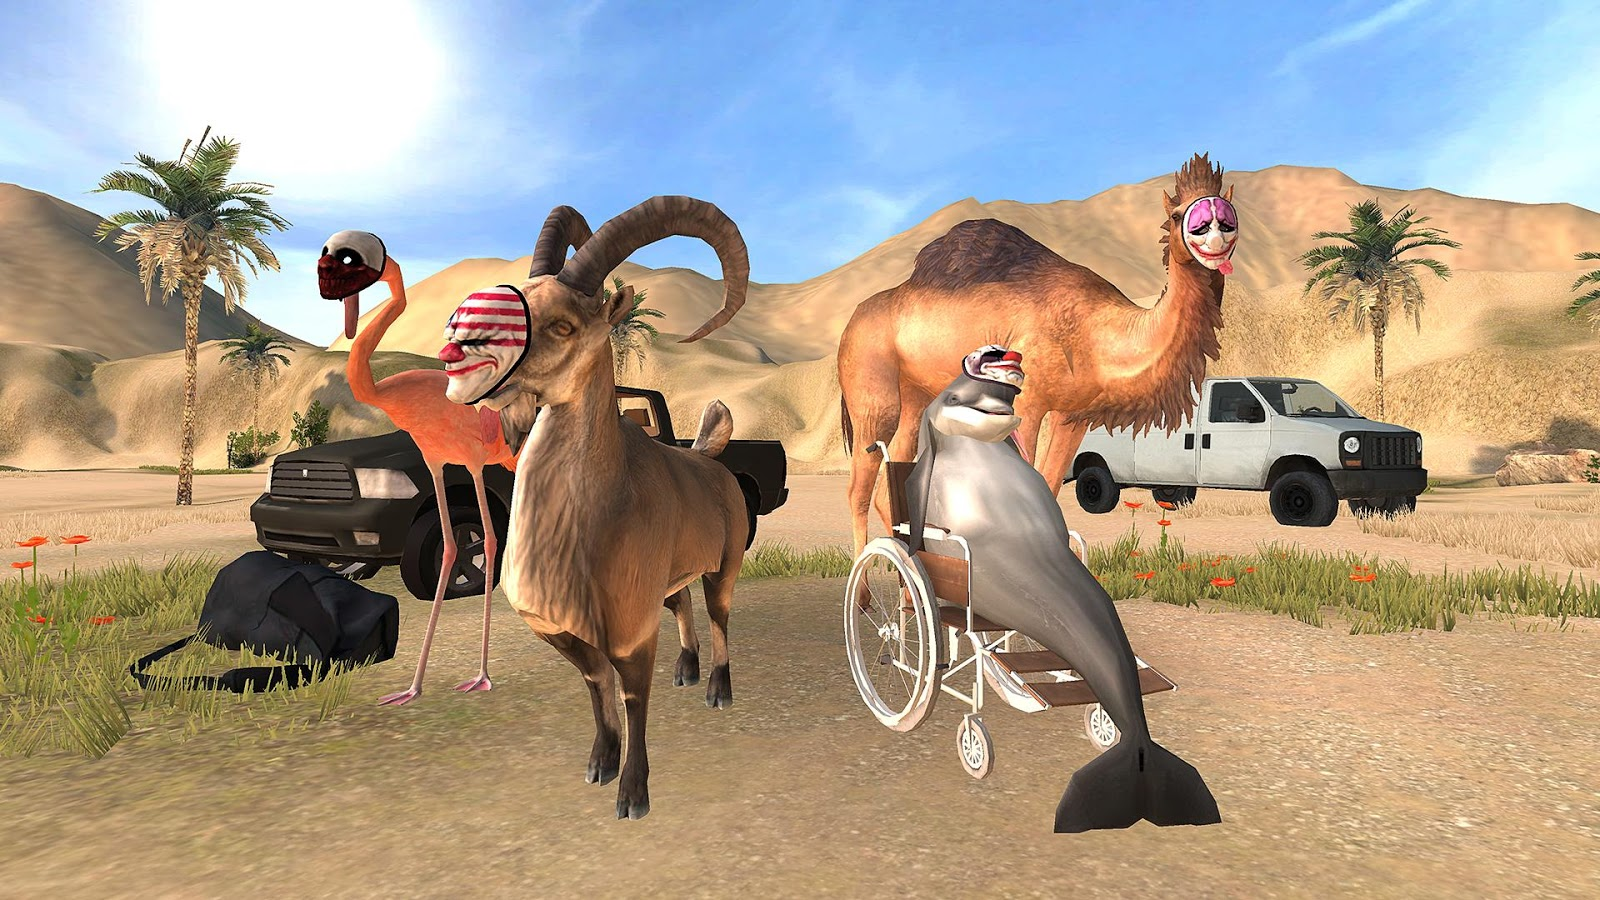 goat simulator mmo android apk